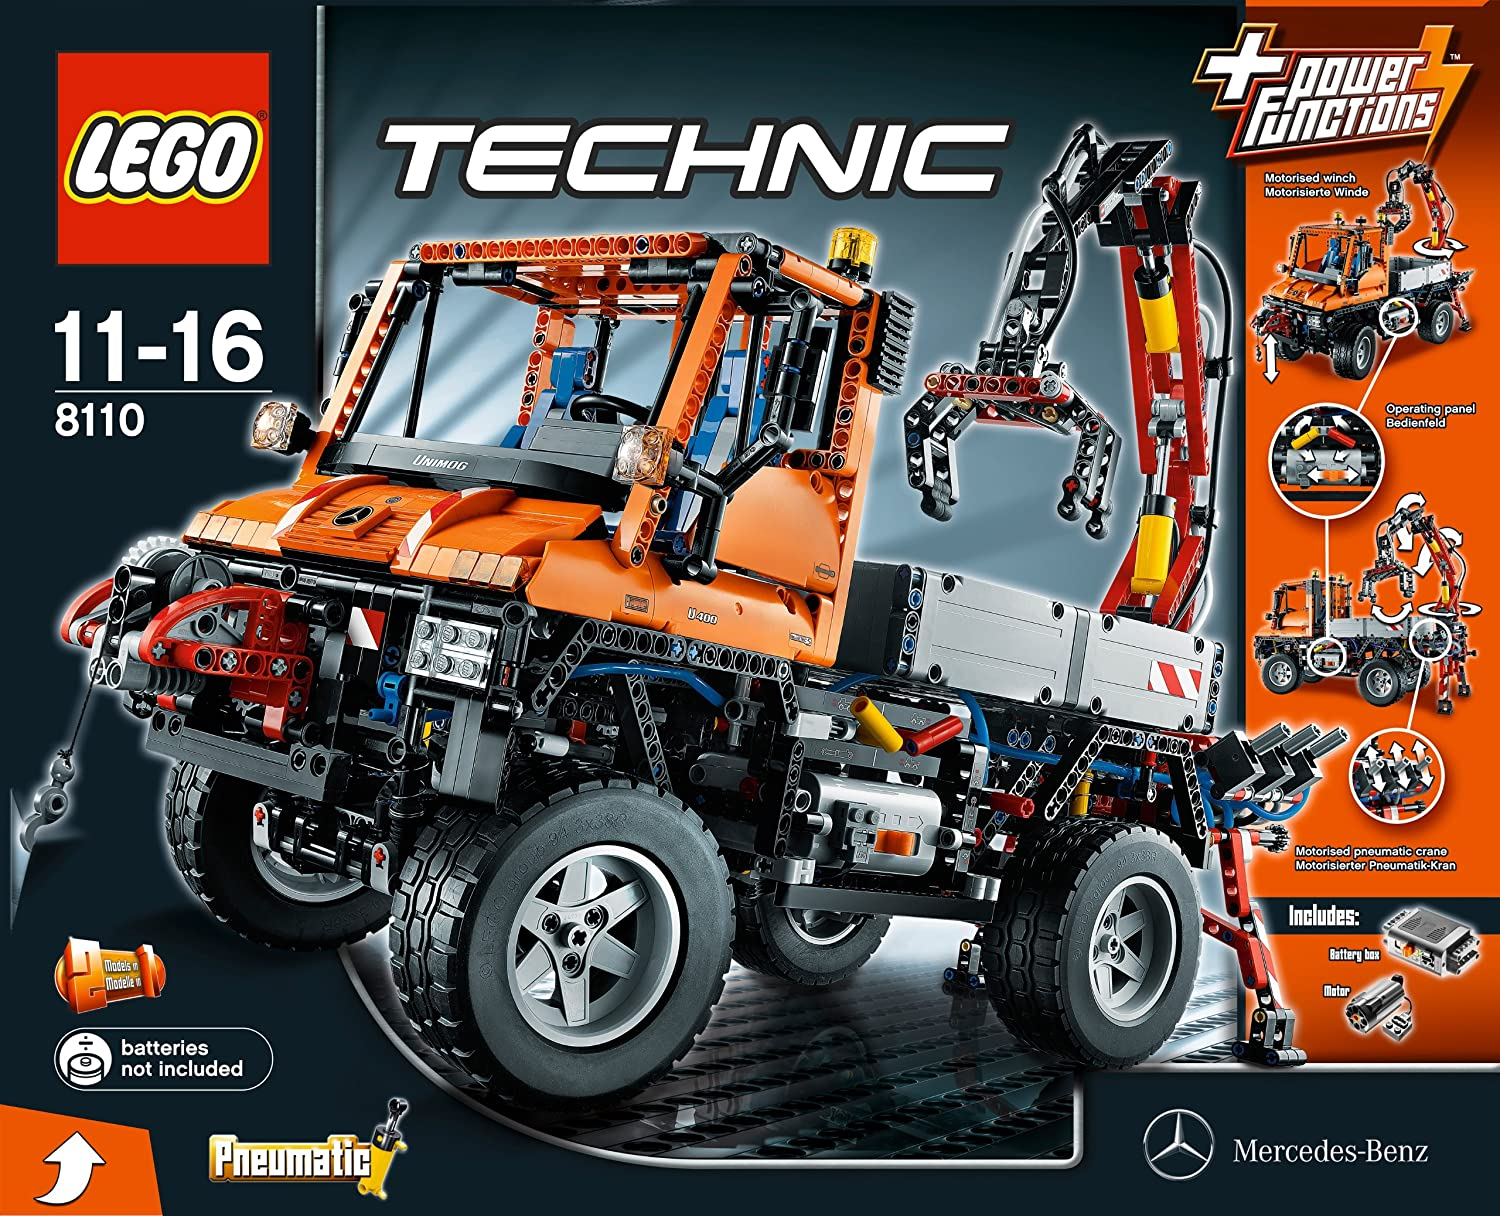 Amazon com: LEGO Technic Unimog U400 (8110): Toys & Games